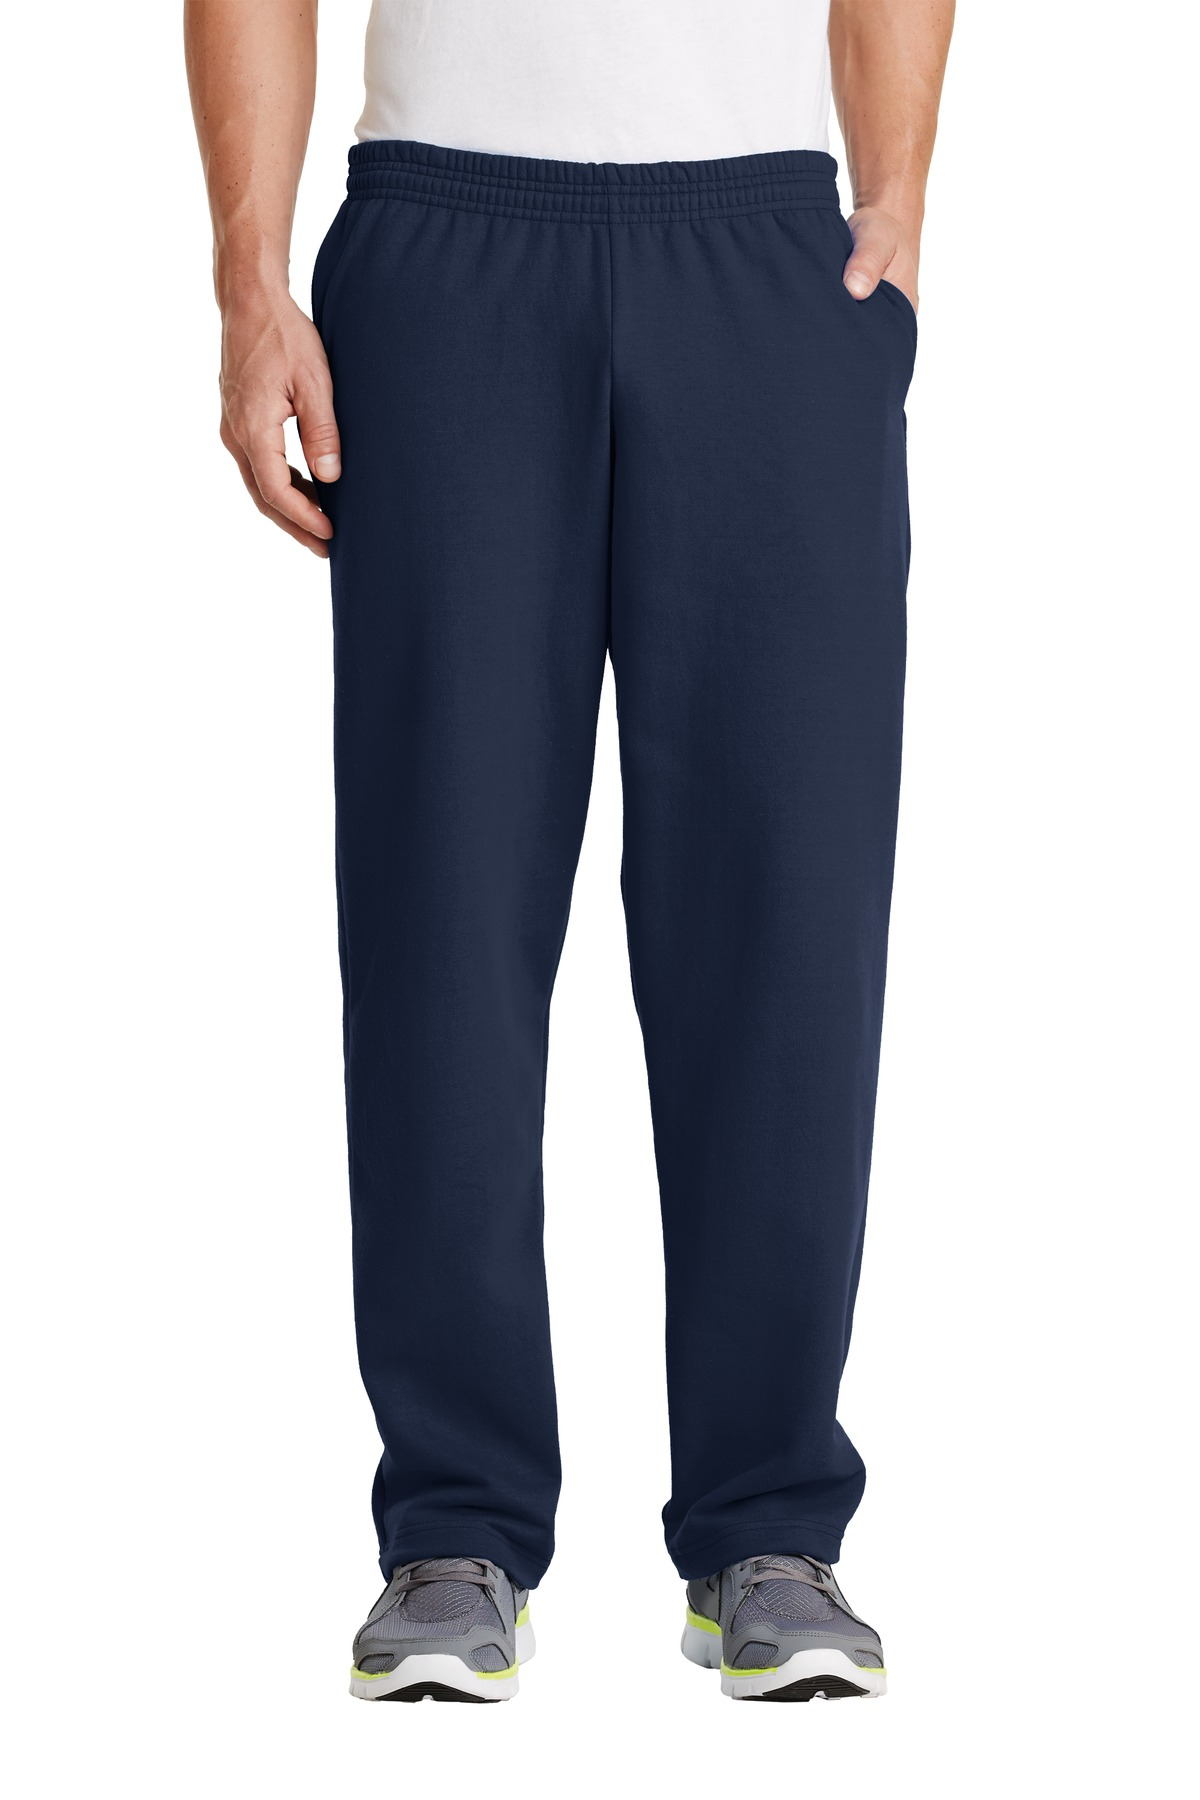 Port & Company ®  - Core Fleece Sweatpant with Pockets. PC78P - Navy